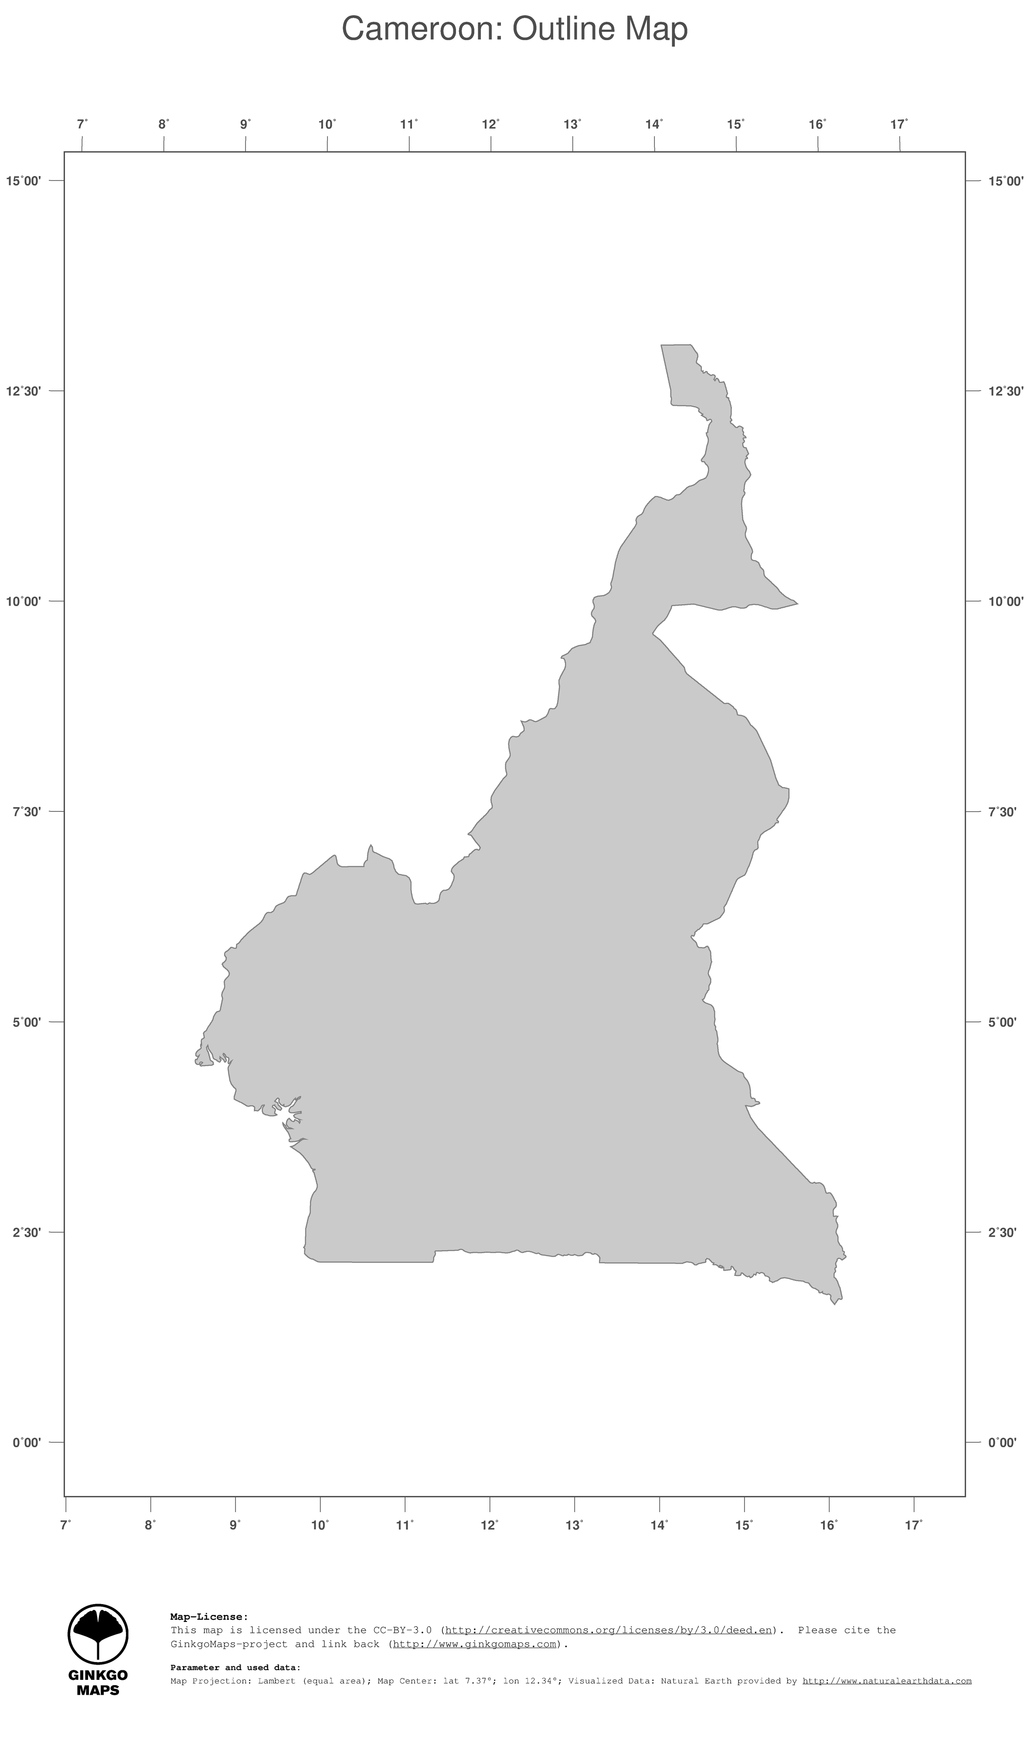 Map Cameroon GinkgoMaps continent Africa region Cameroon